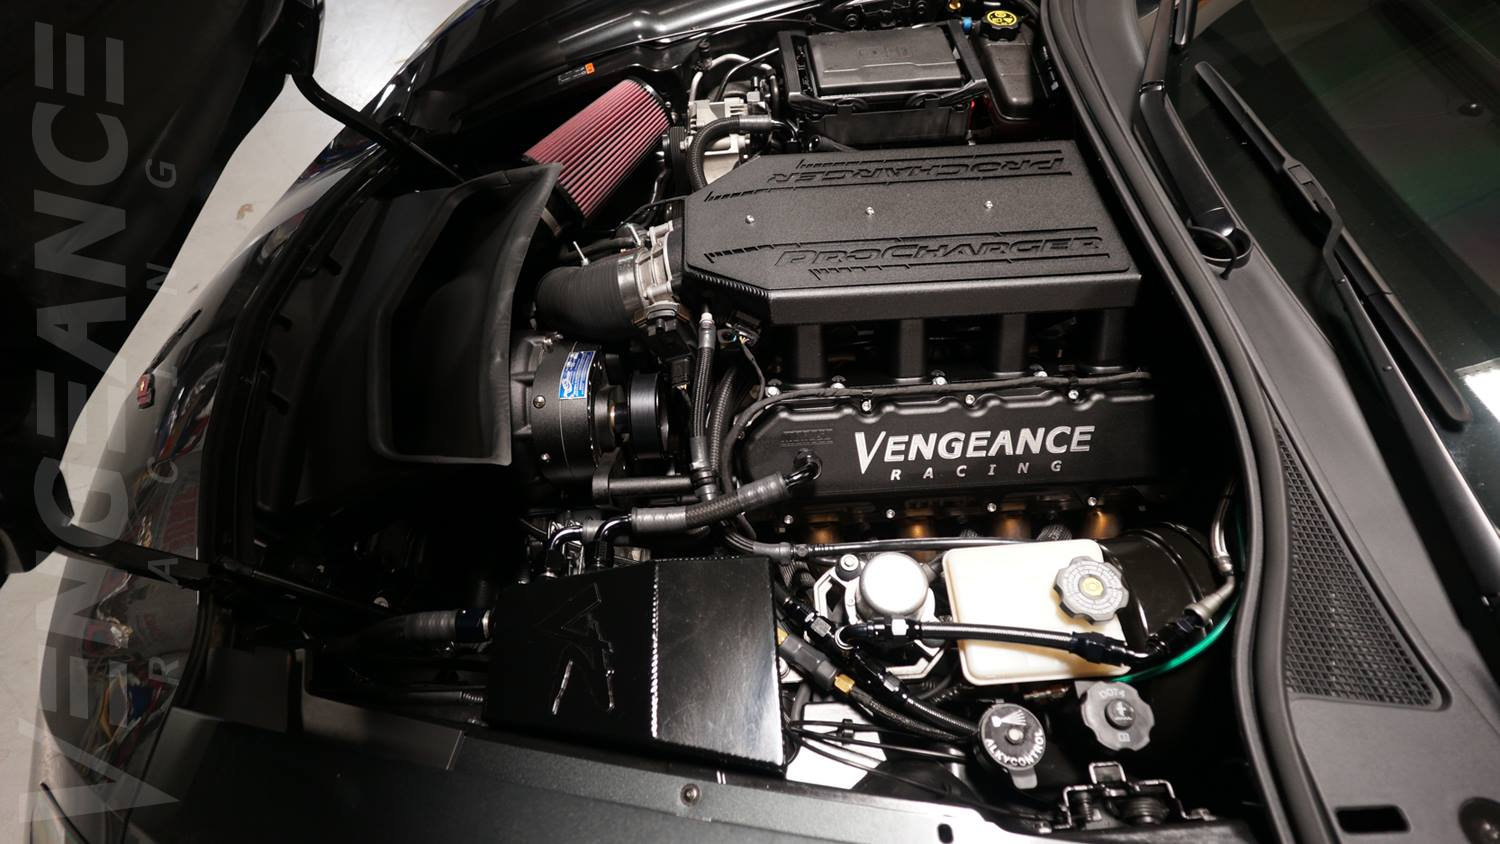 Vengeance Racing | Forgeline Motorsports Custom Made-to